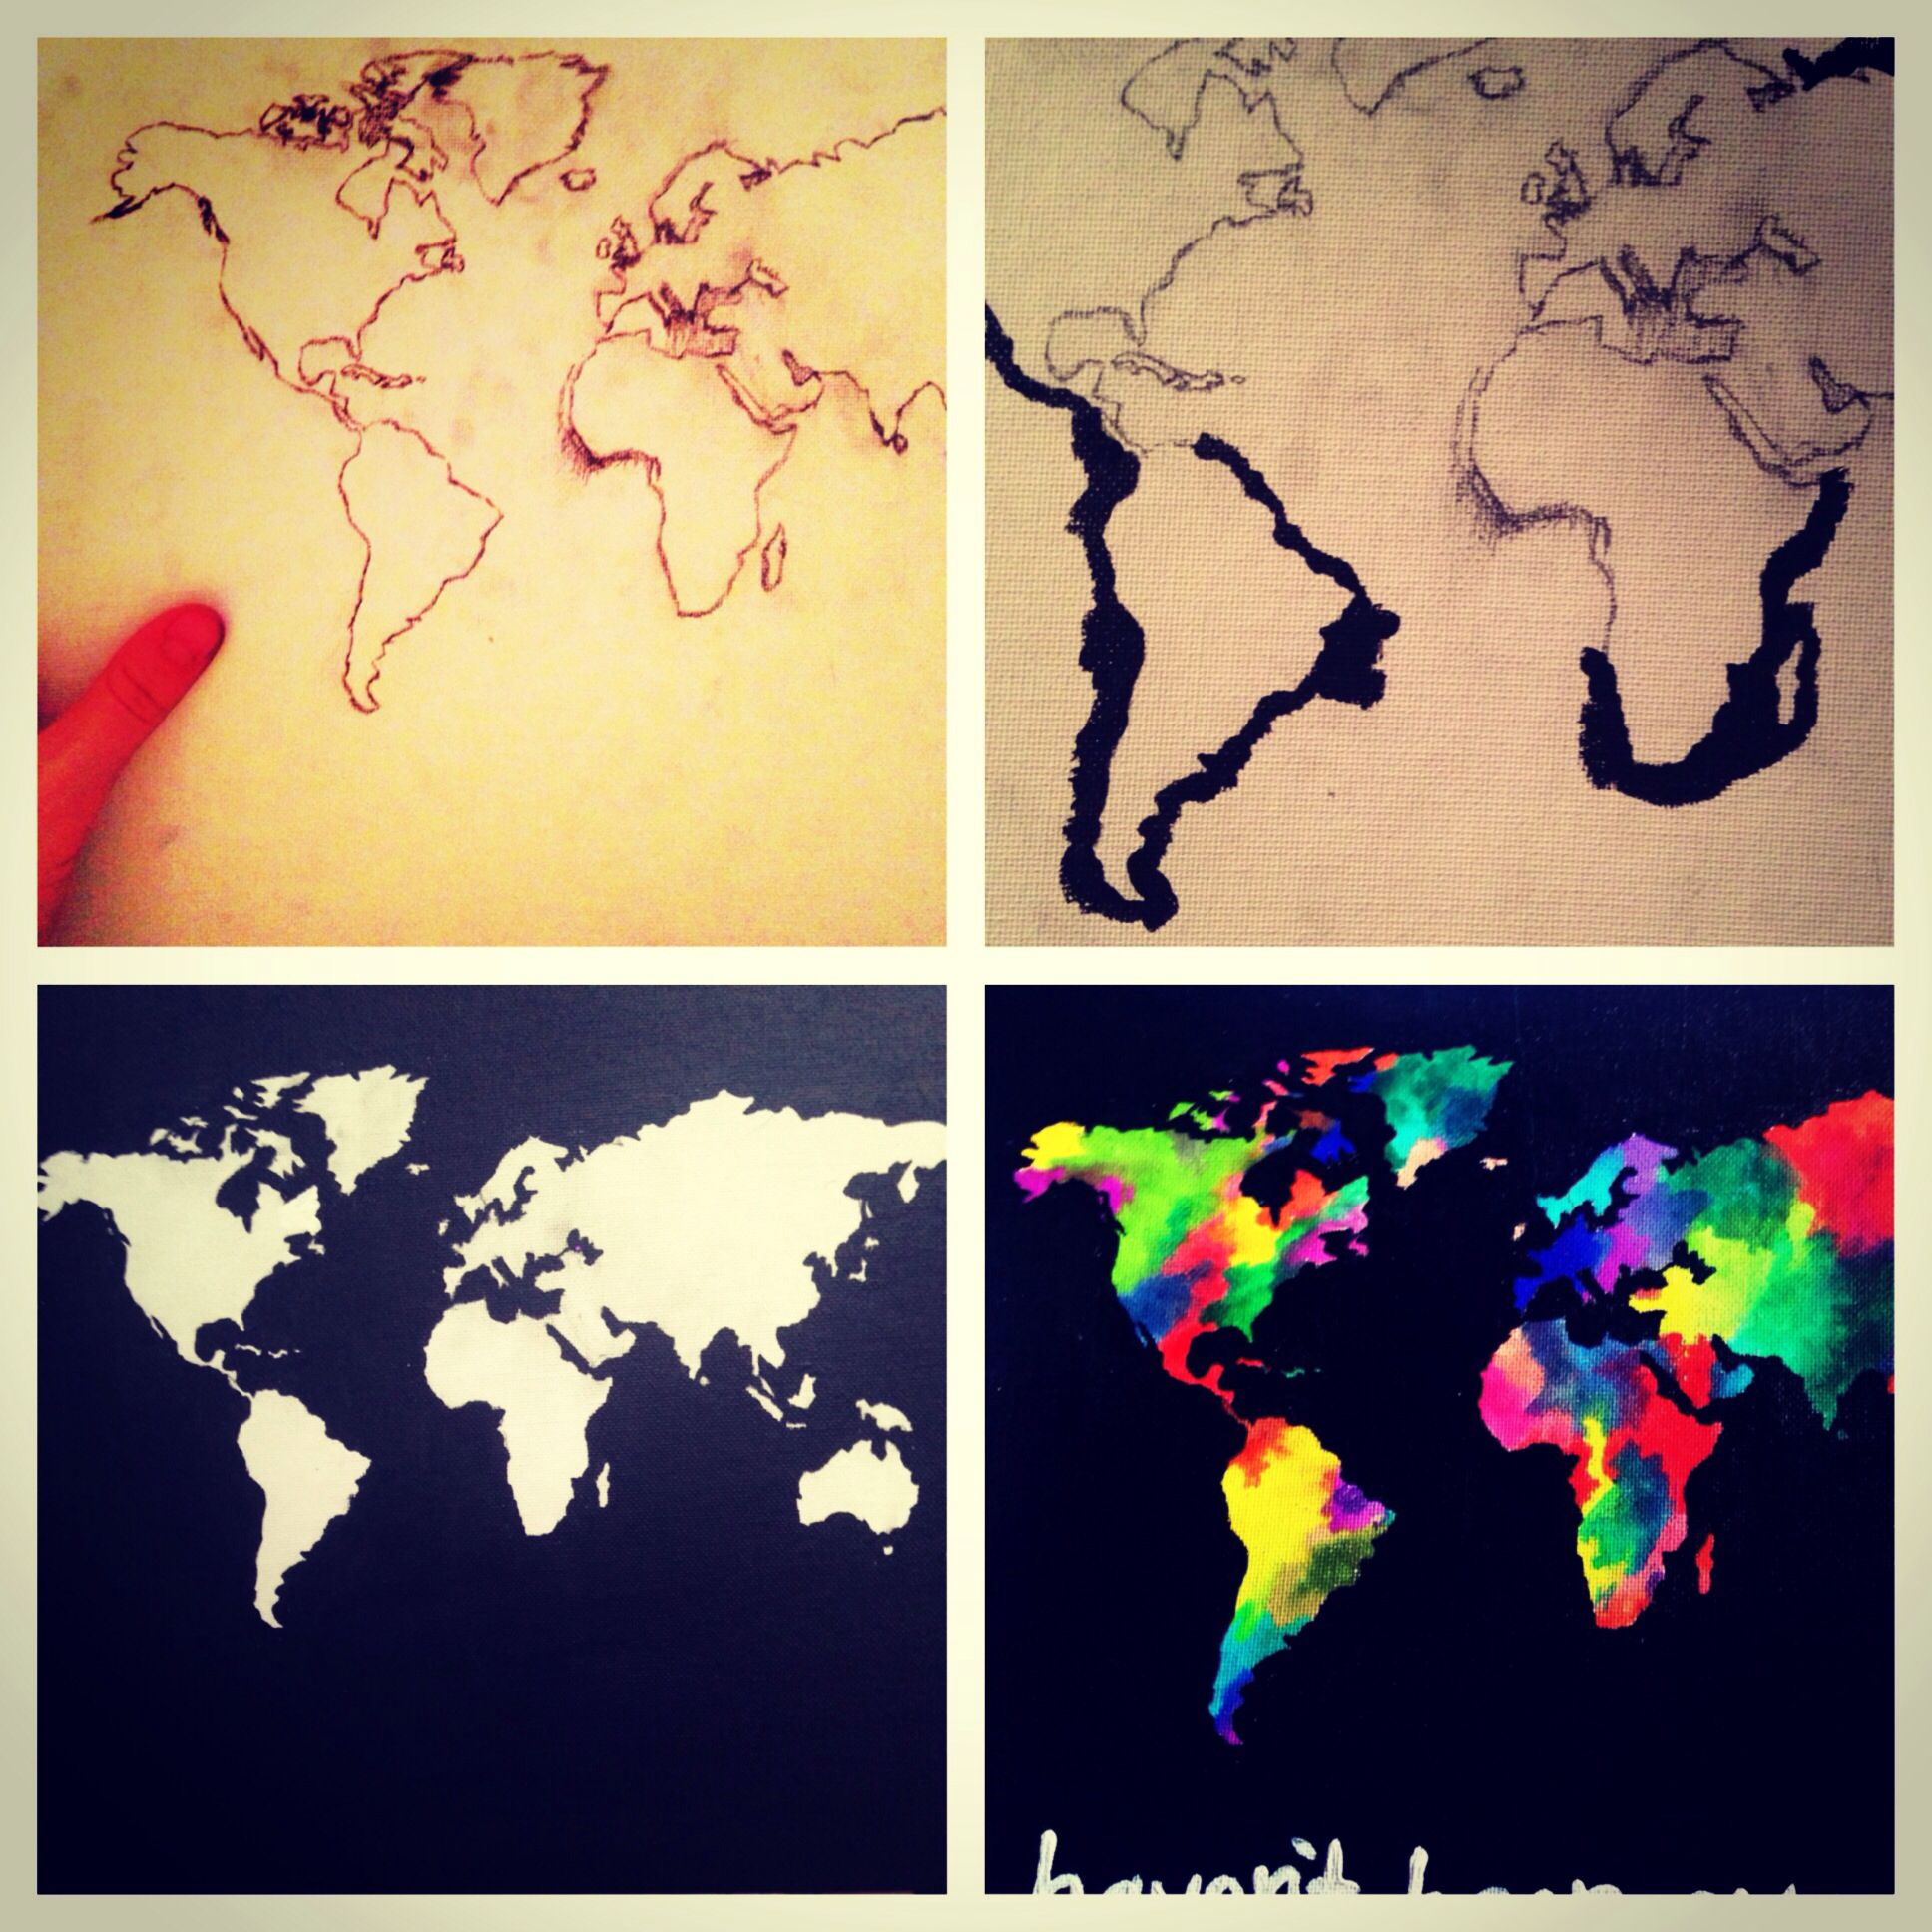 Diy World map canvas painting | Completed Pins. Hollatchaboi ...